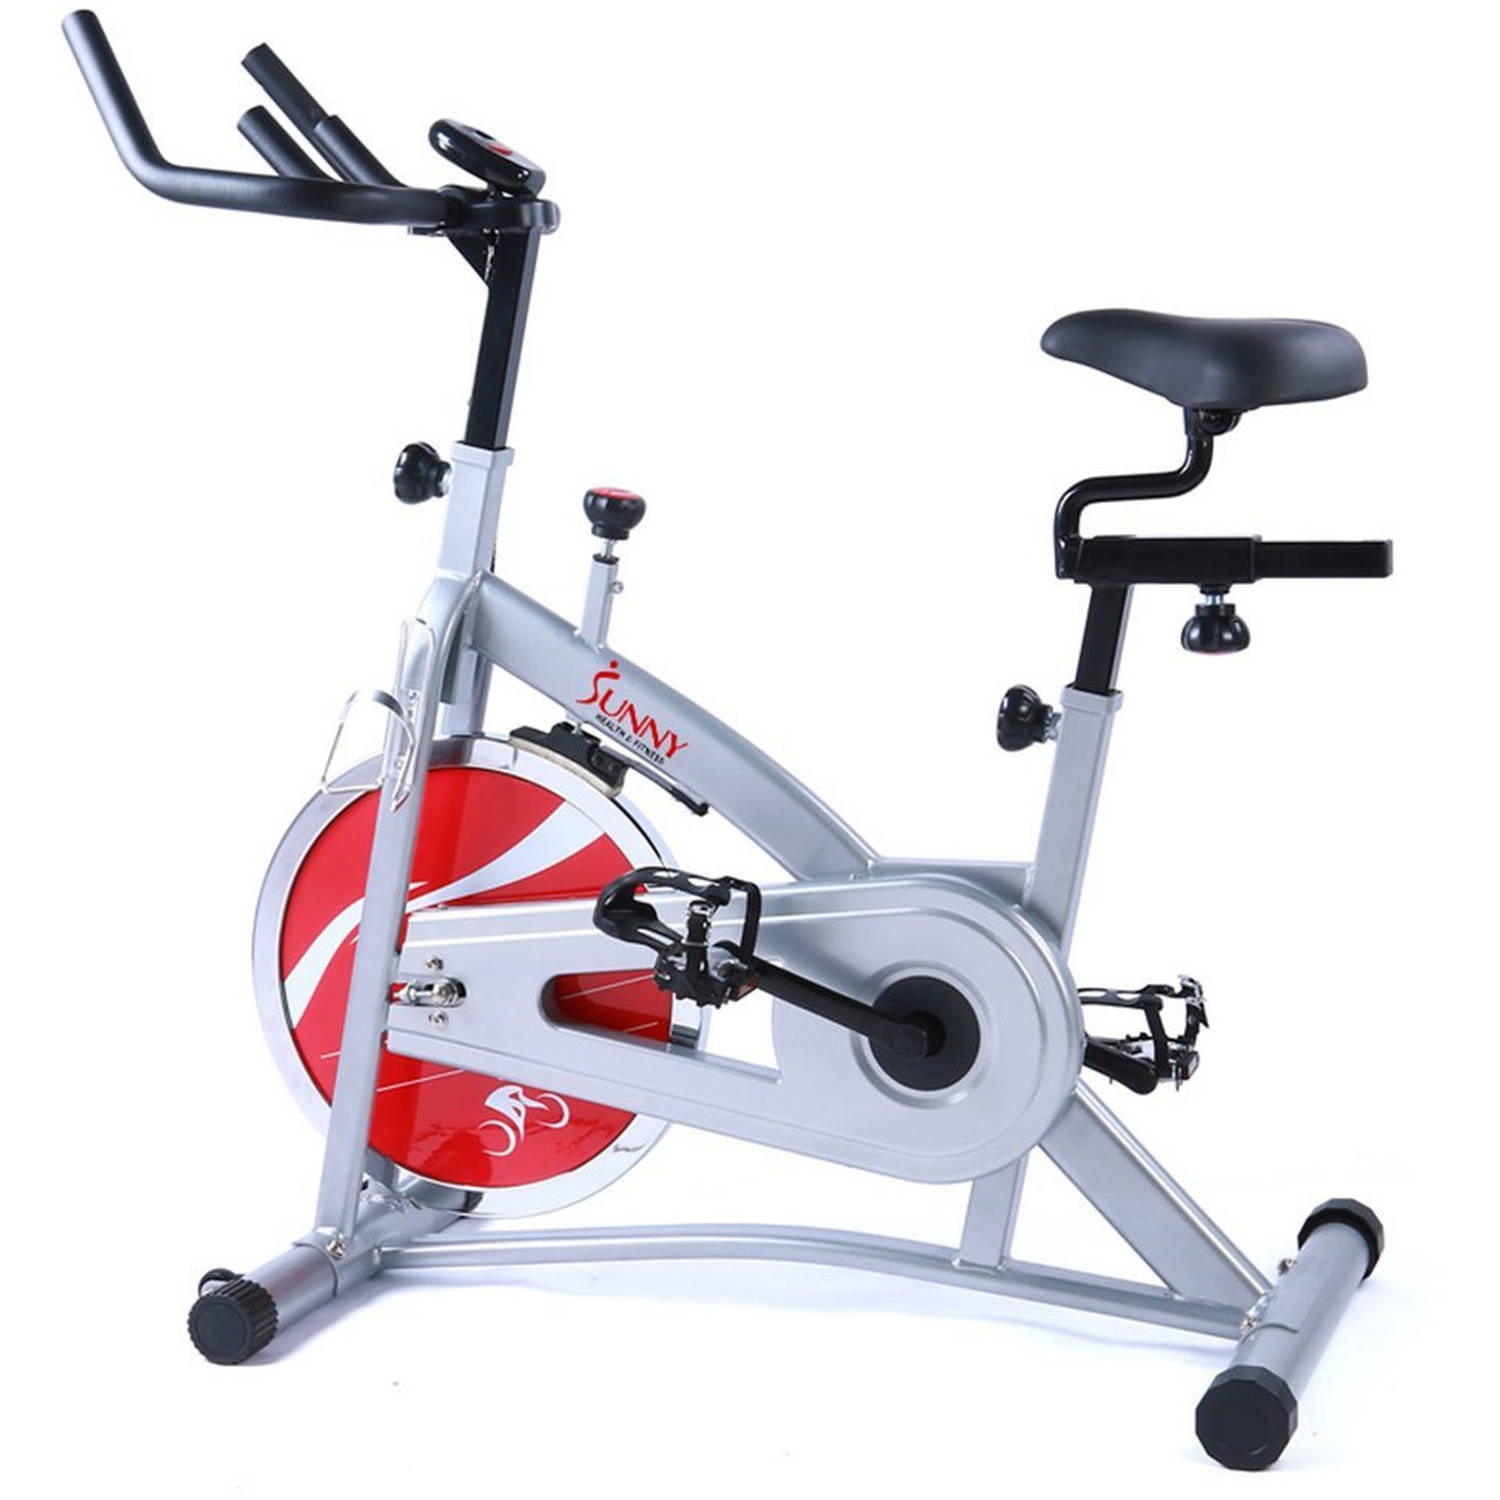 Chain Drive Indoor Cycling Bike Exercise Bike w  LCD Monitor by Sunny Health & Fitness SF-B1421 by Sunny Health & Fitness